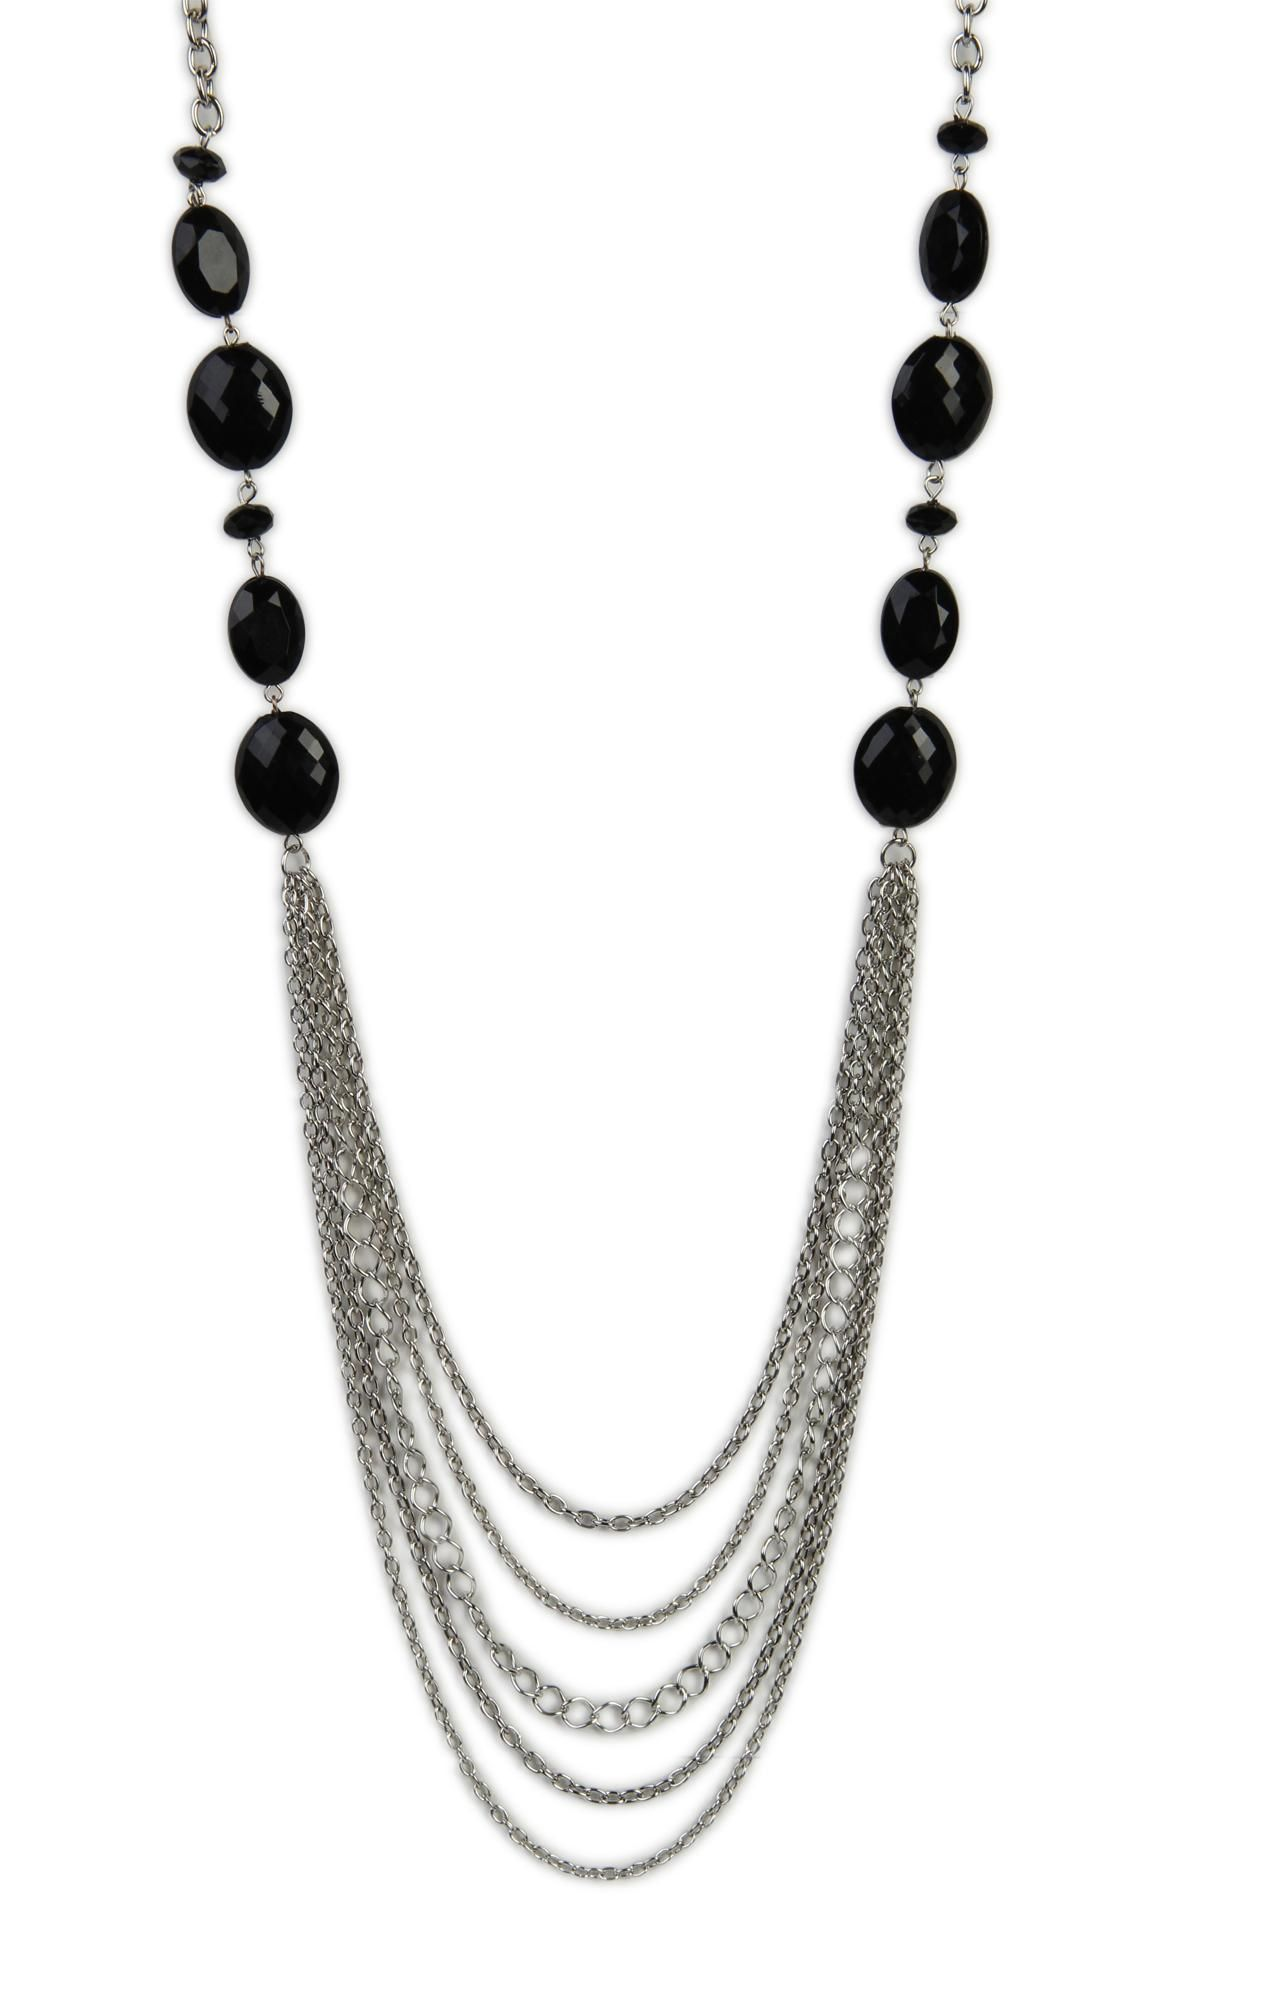 Multi Chain Necklace With Bead Stations 9 37